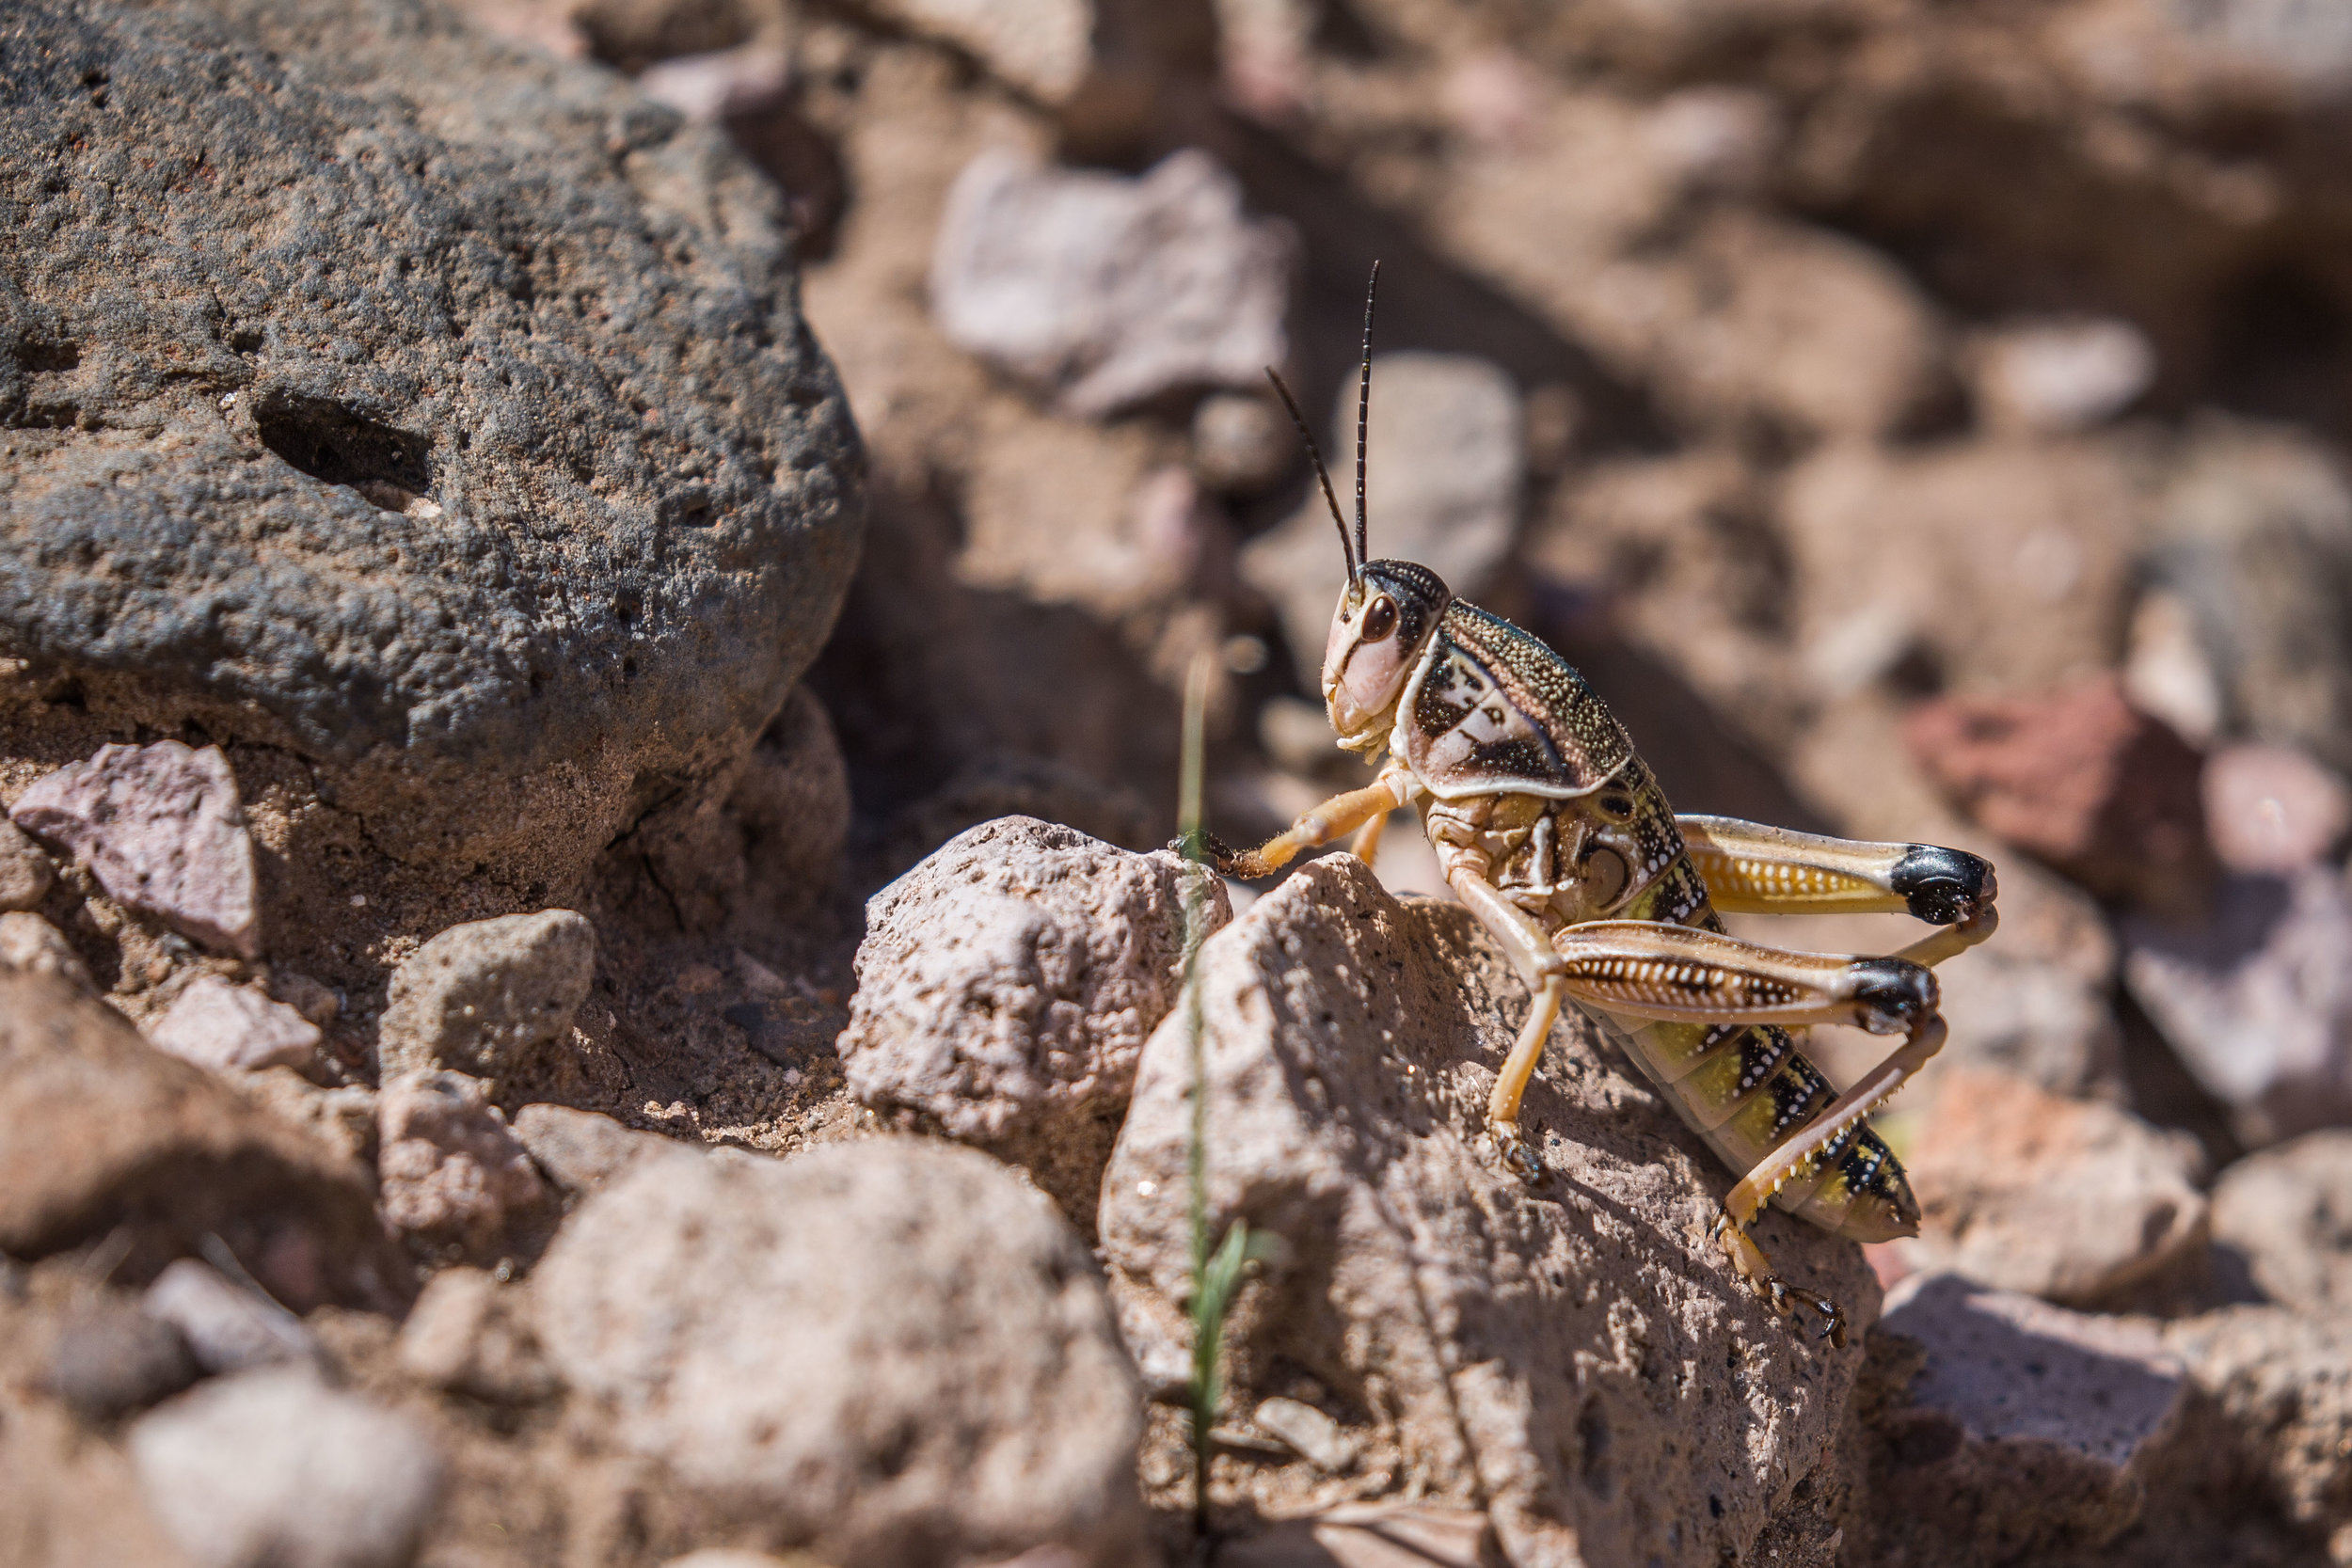 plains lubber grasshopper (Brachystola magna) - A plains lubber grasshopper also known as the